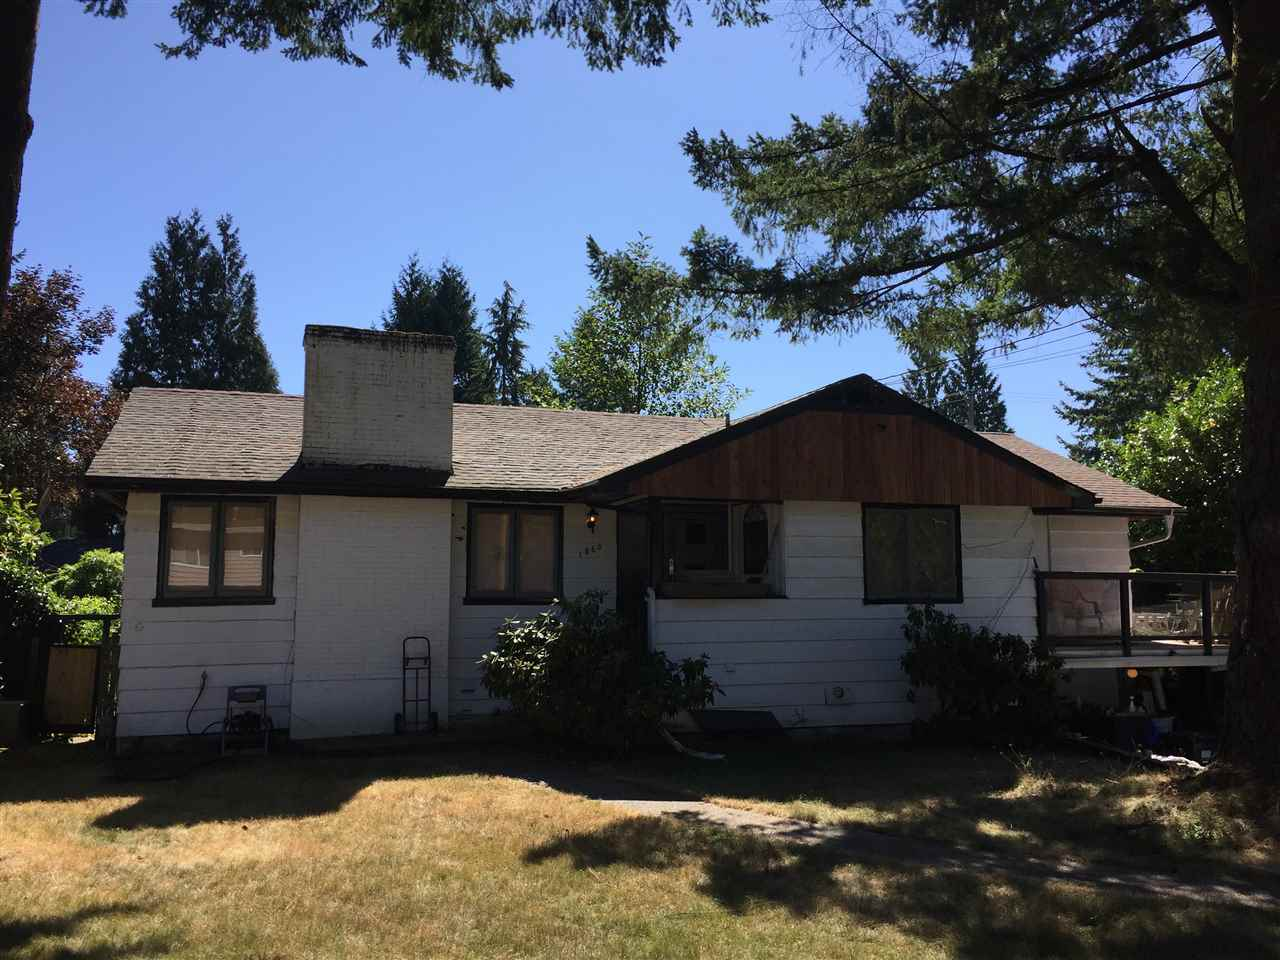 Investor and Builder ALERT !!! Renovate or Build your dream home in one of the most desired neighborhoods in North Vancouver. Short walking distance to Canyon Heights Elementary and Handsworth Secondary School. An outstanding place and neighborhood to raise a family. Open House Sunday Nov.19th from 2pm to 4pm  **Accepted offer, court date scheduled Nov.23/2017 at 9:45am. Please contact listing realtor for instructions on placing an offer at court**